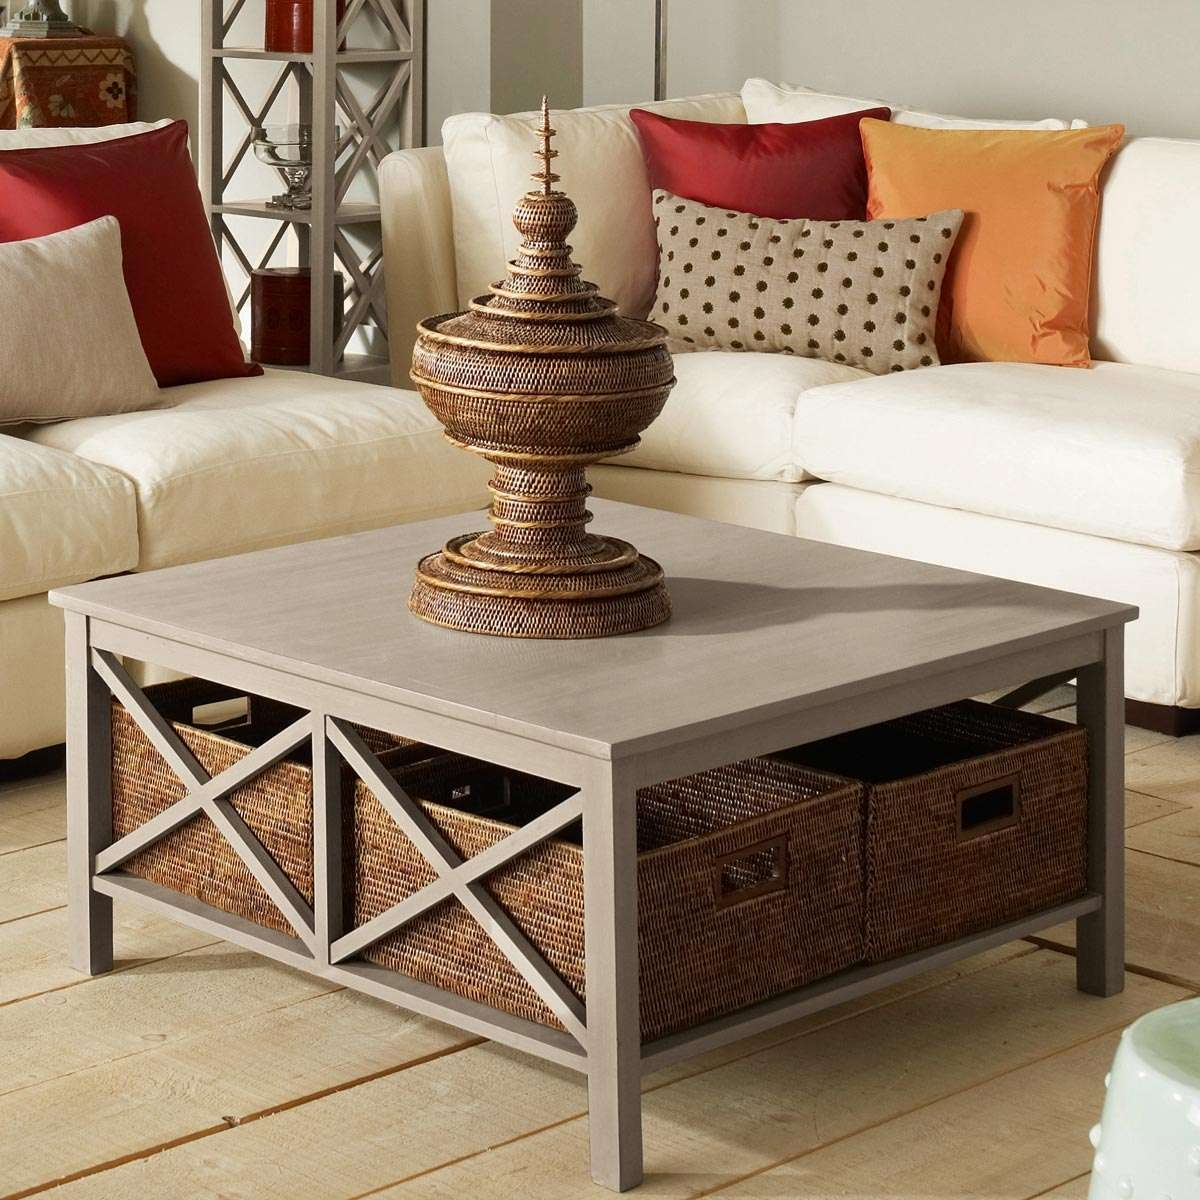 Well Known Rustic Square Coffee Table With Storage Throughout Square Coffee Table With Storage (View 20 of 20)